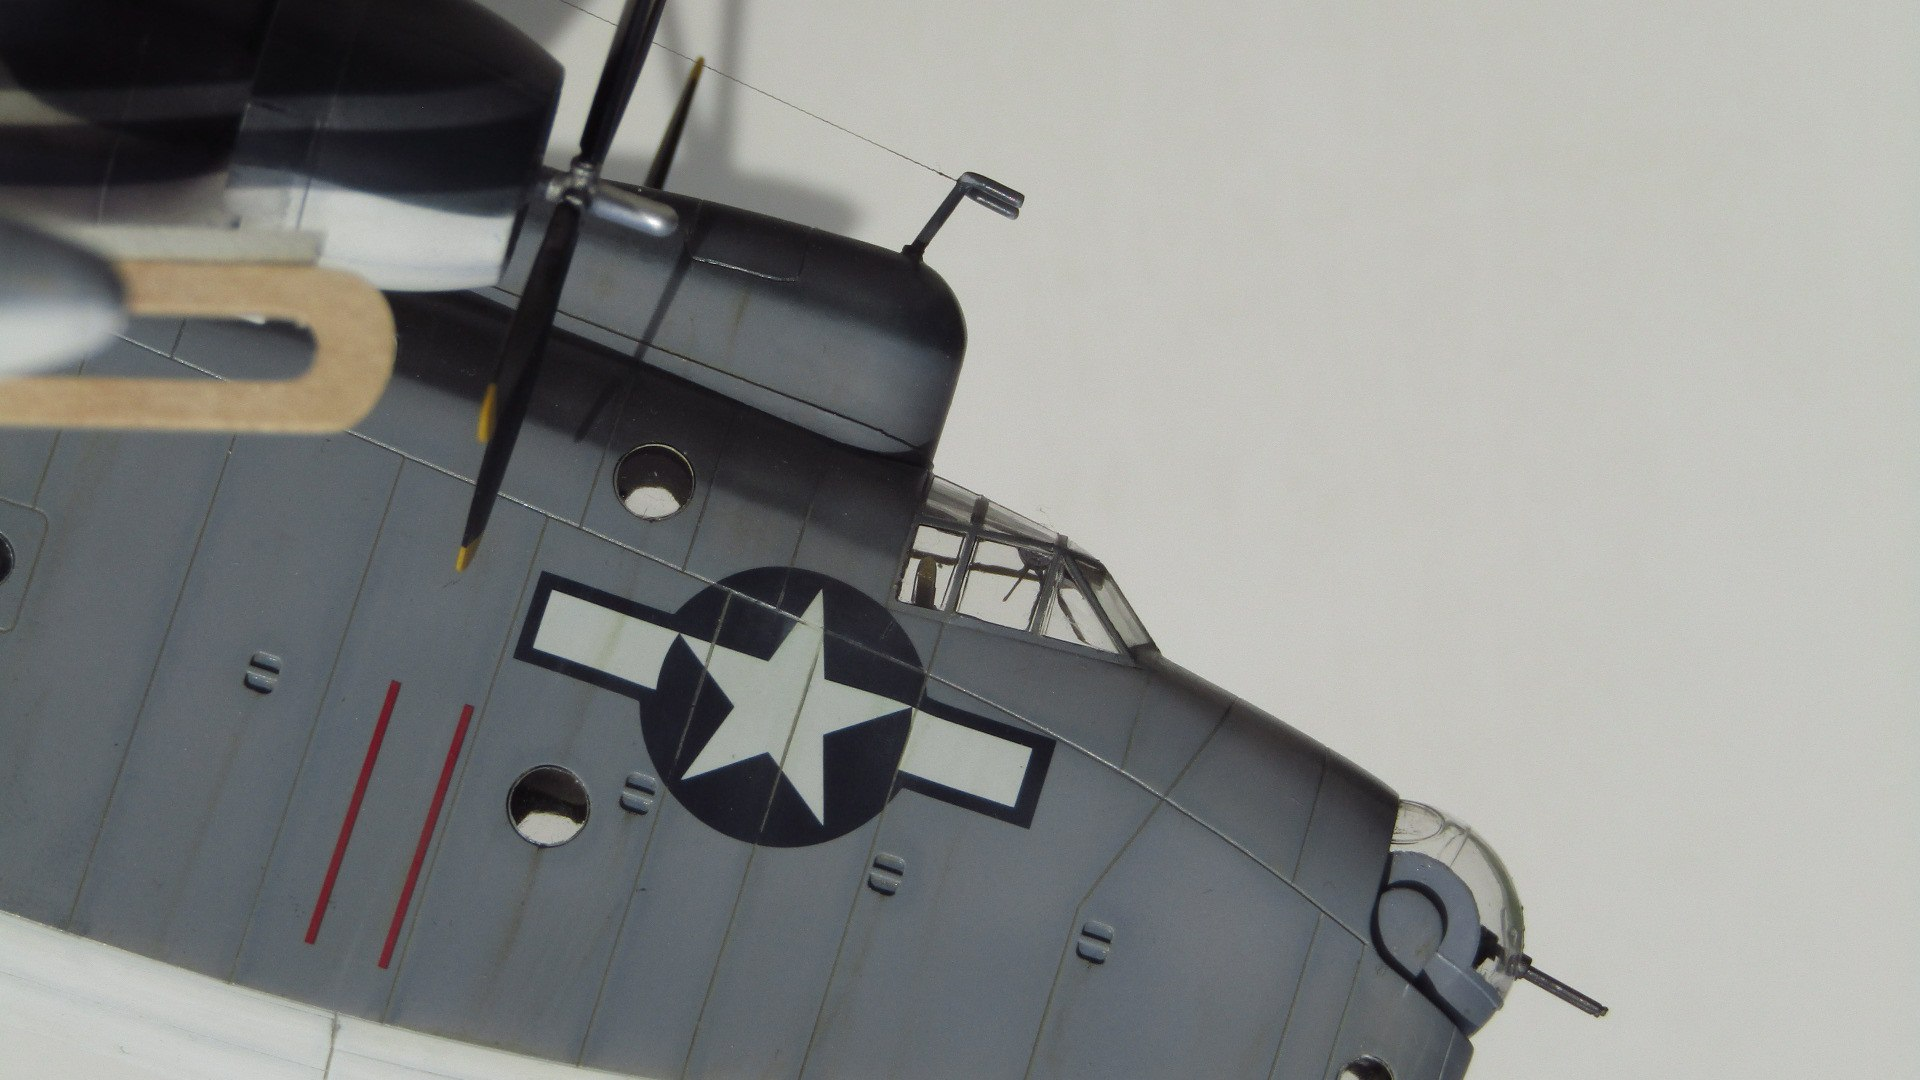 PBM-5 A MARINER 1/72 (MINICRAFT) - Страница 2 FI_eh83xucE